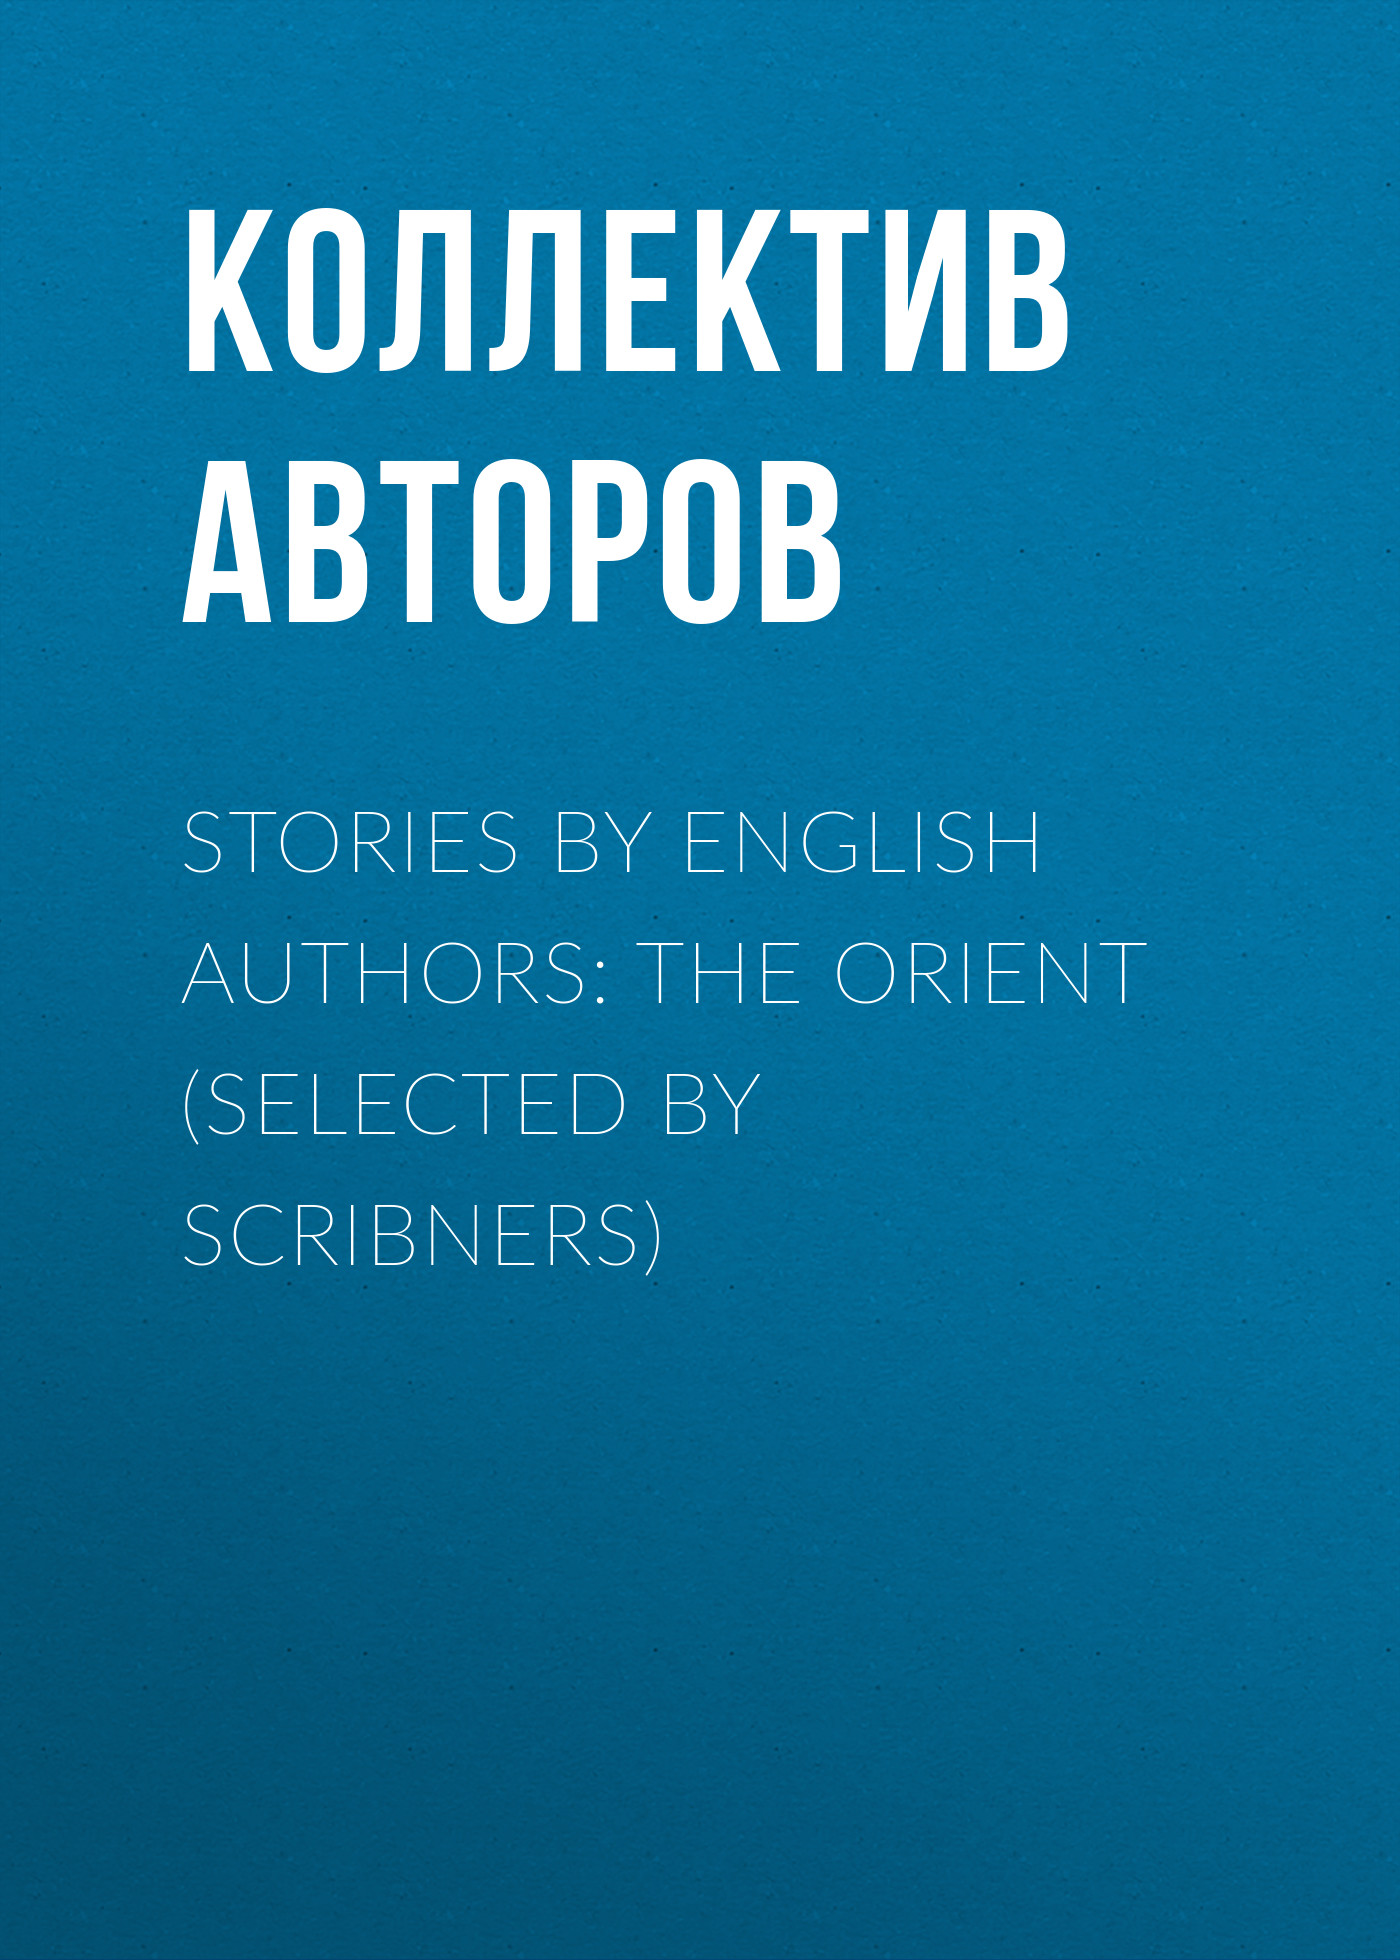 Коллектив авторов Stories by English Authors: The Orient (Selected by Scribners)